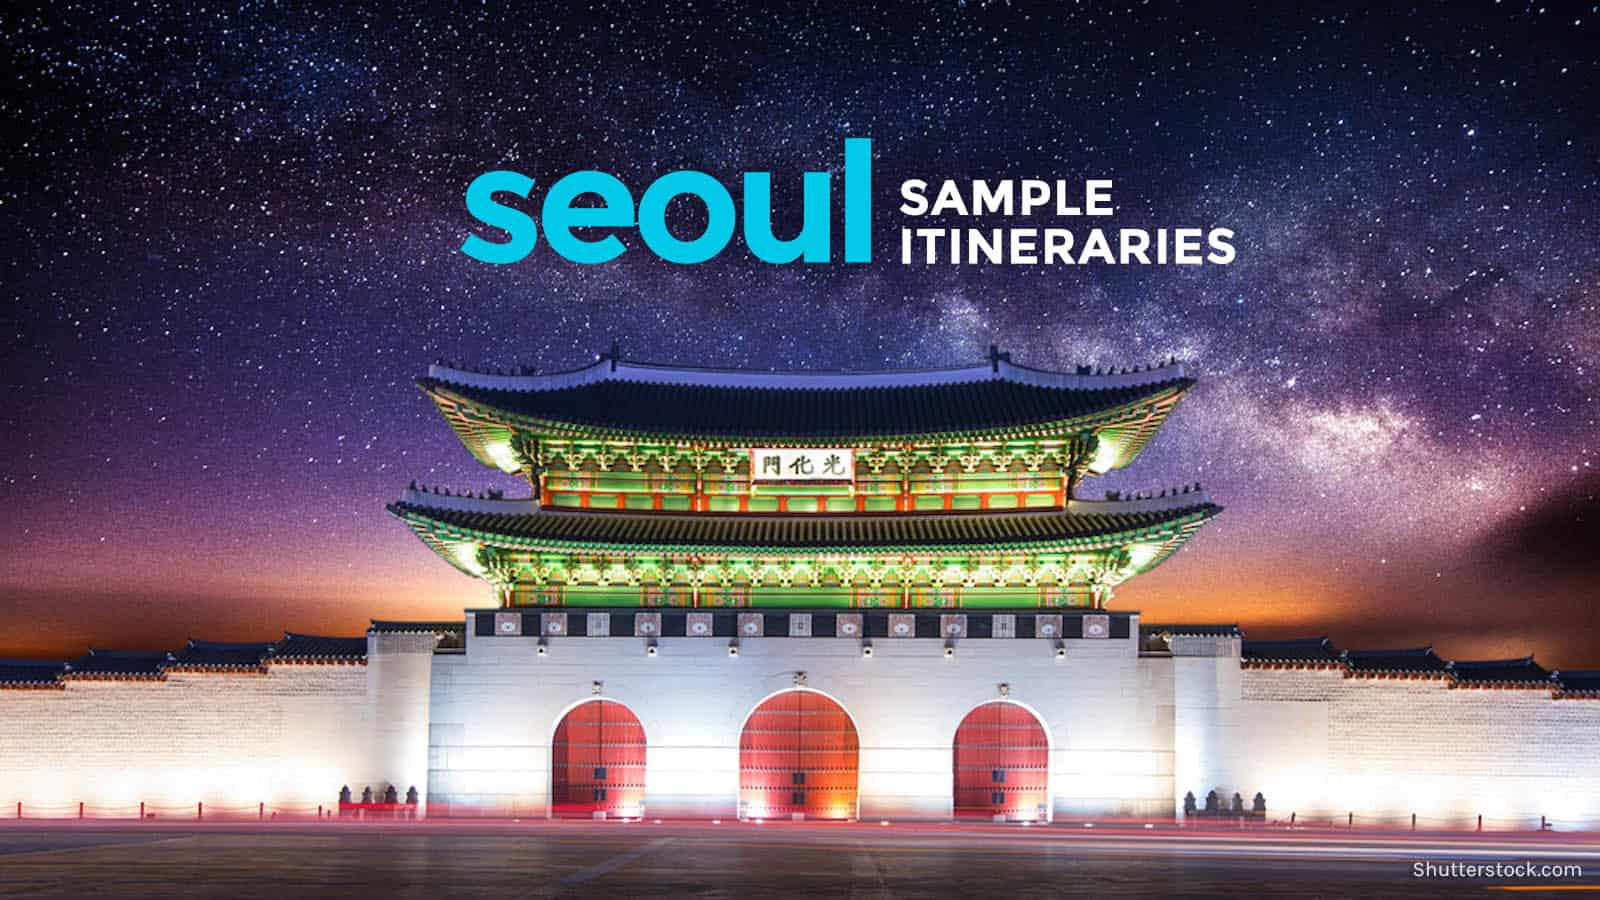 SAMPLE SEOUL ITINERARY (with Costs) | The Poor Traveler Itinerary Blog